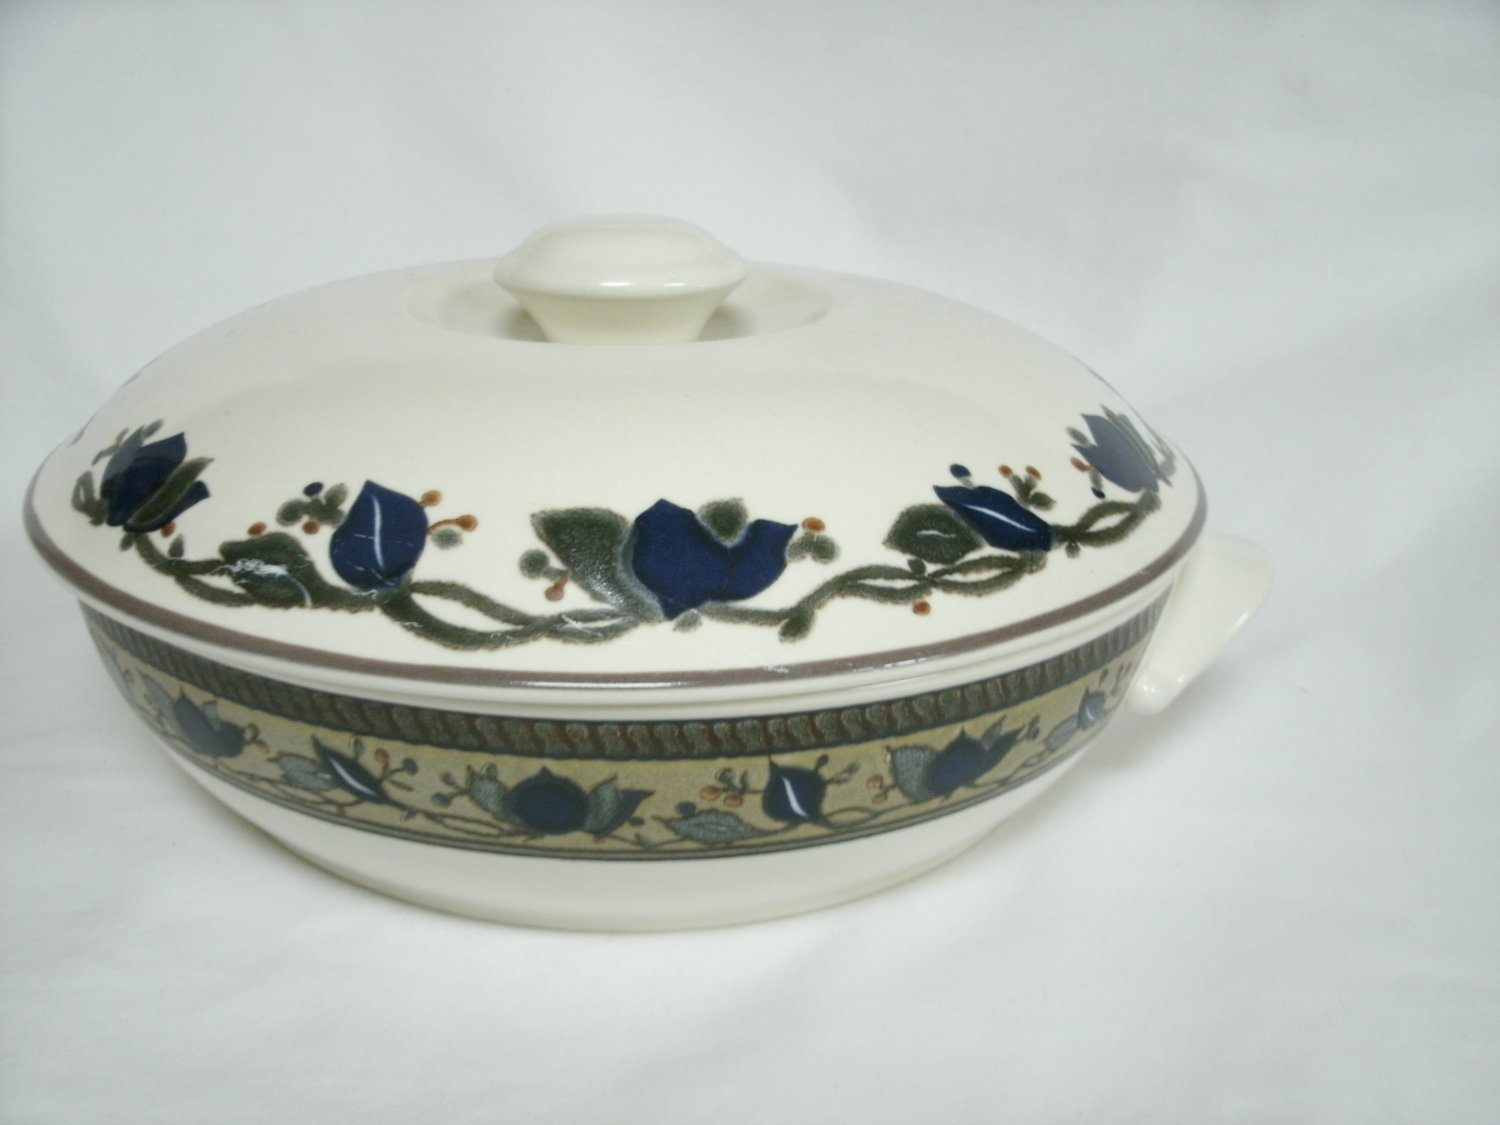 Mikasa Intaglio Arabella Casserole With Lid Beige and Blue Stoneware With Leaf Design 11 Inches